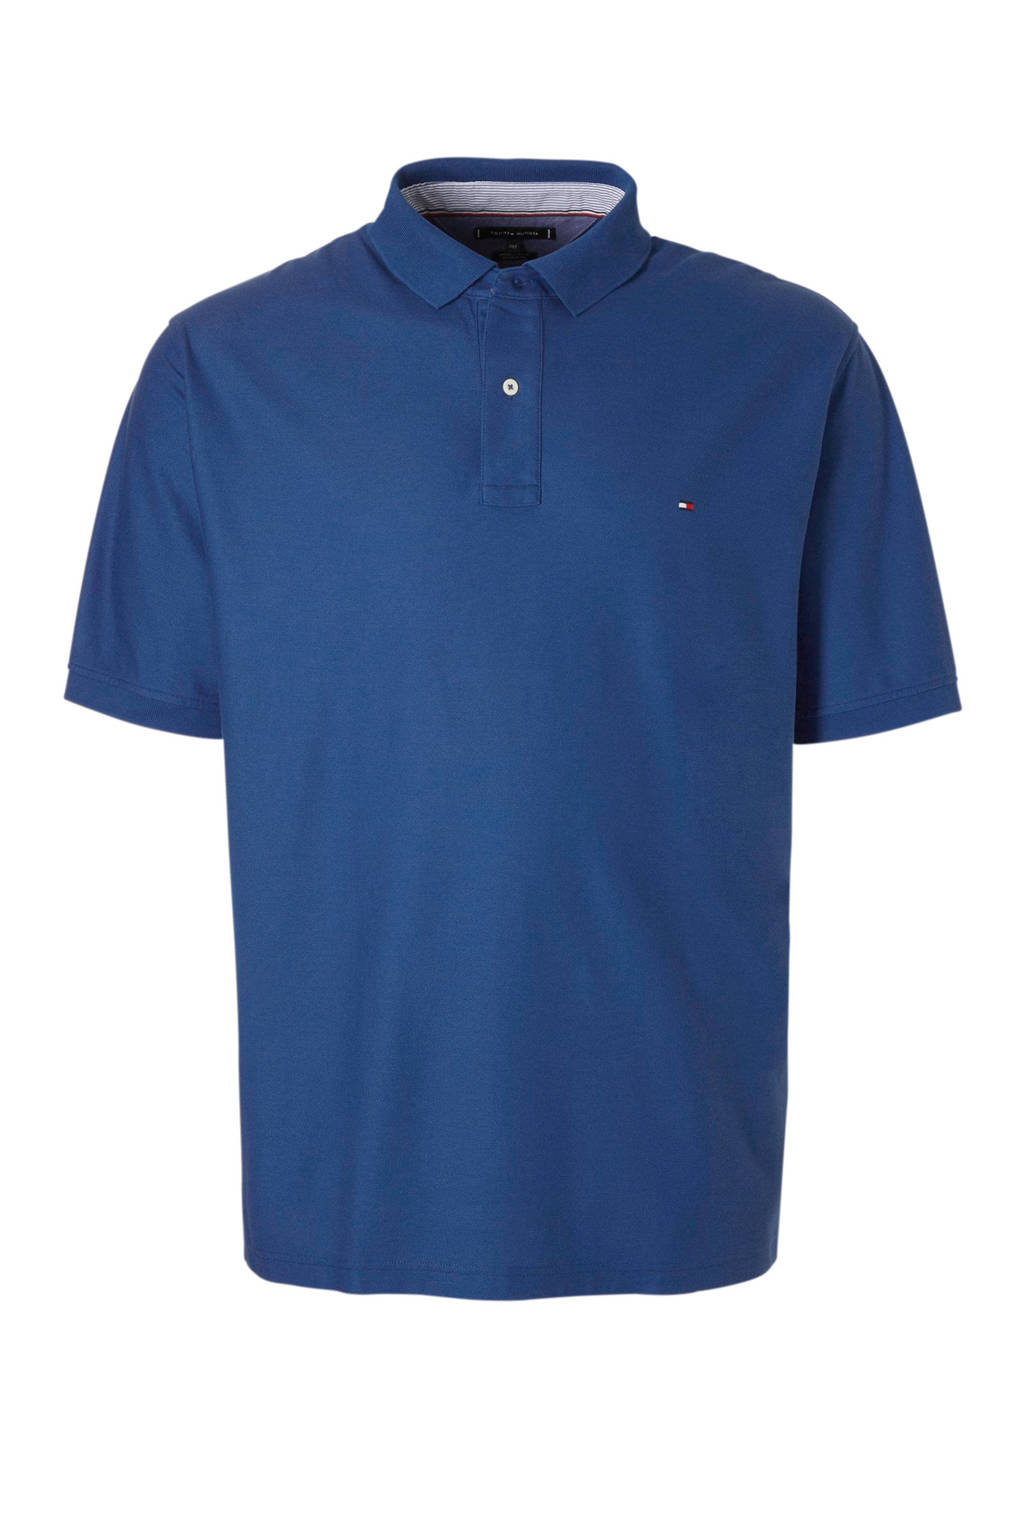 Tommy Hilfiger Big & Tall +size polo met logo, Blauw